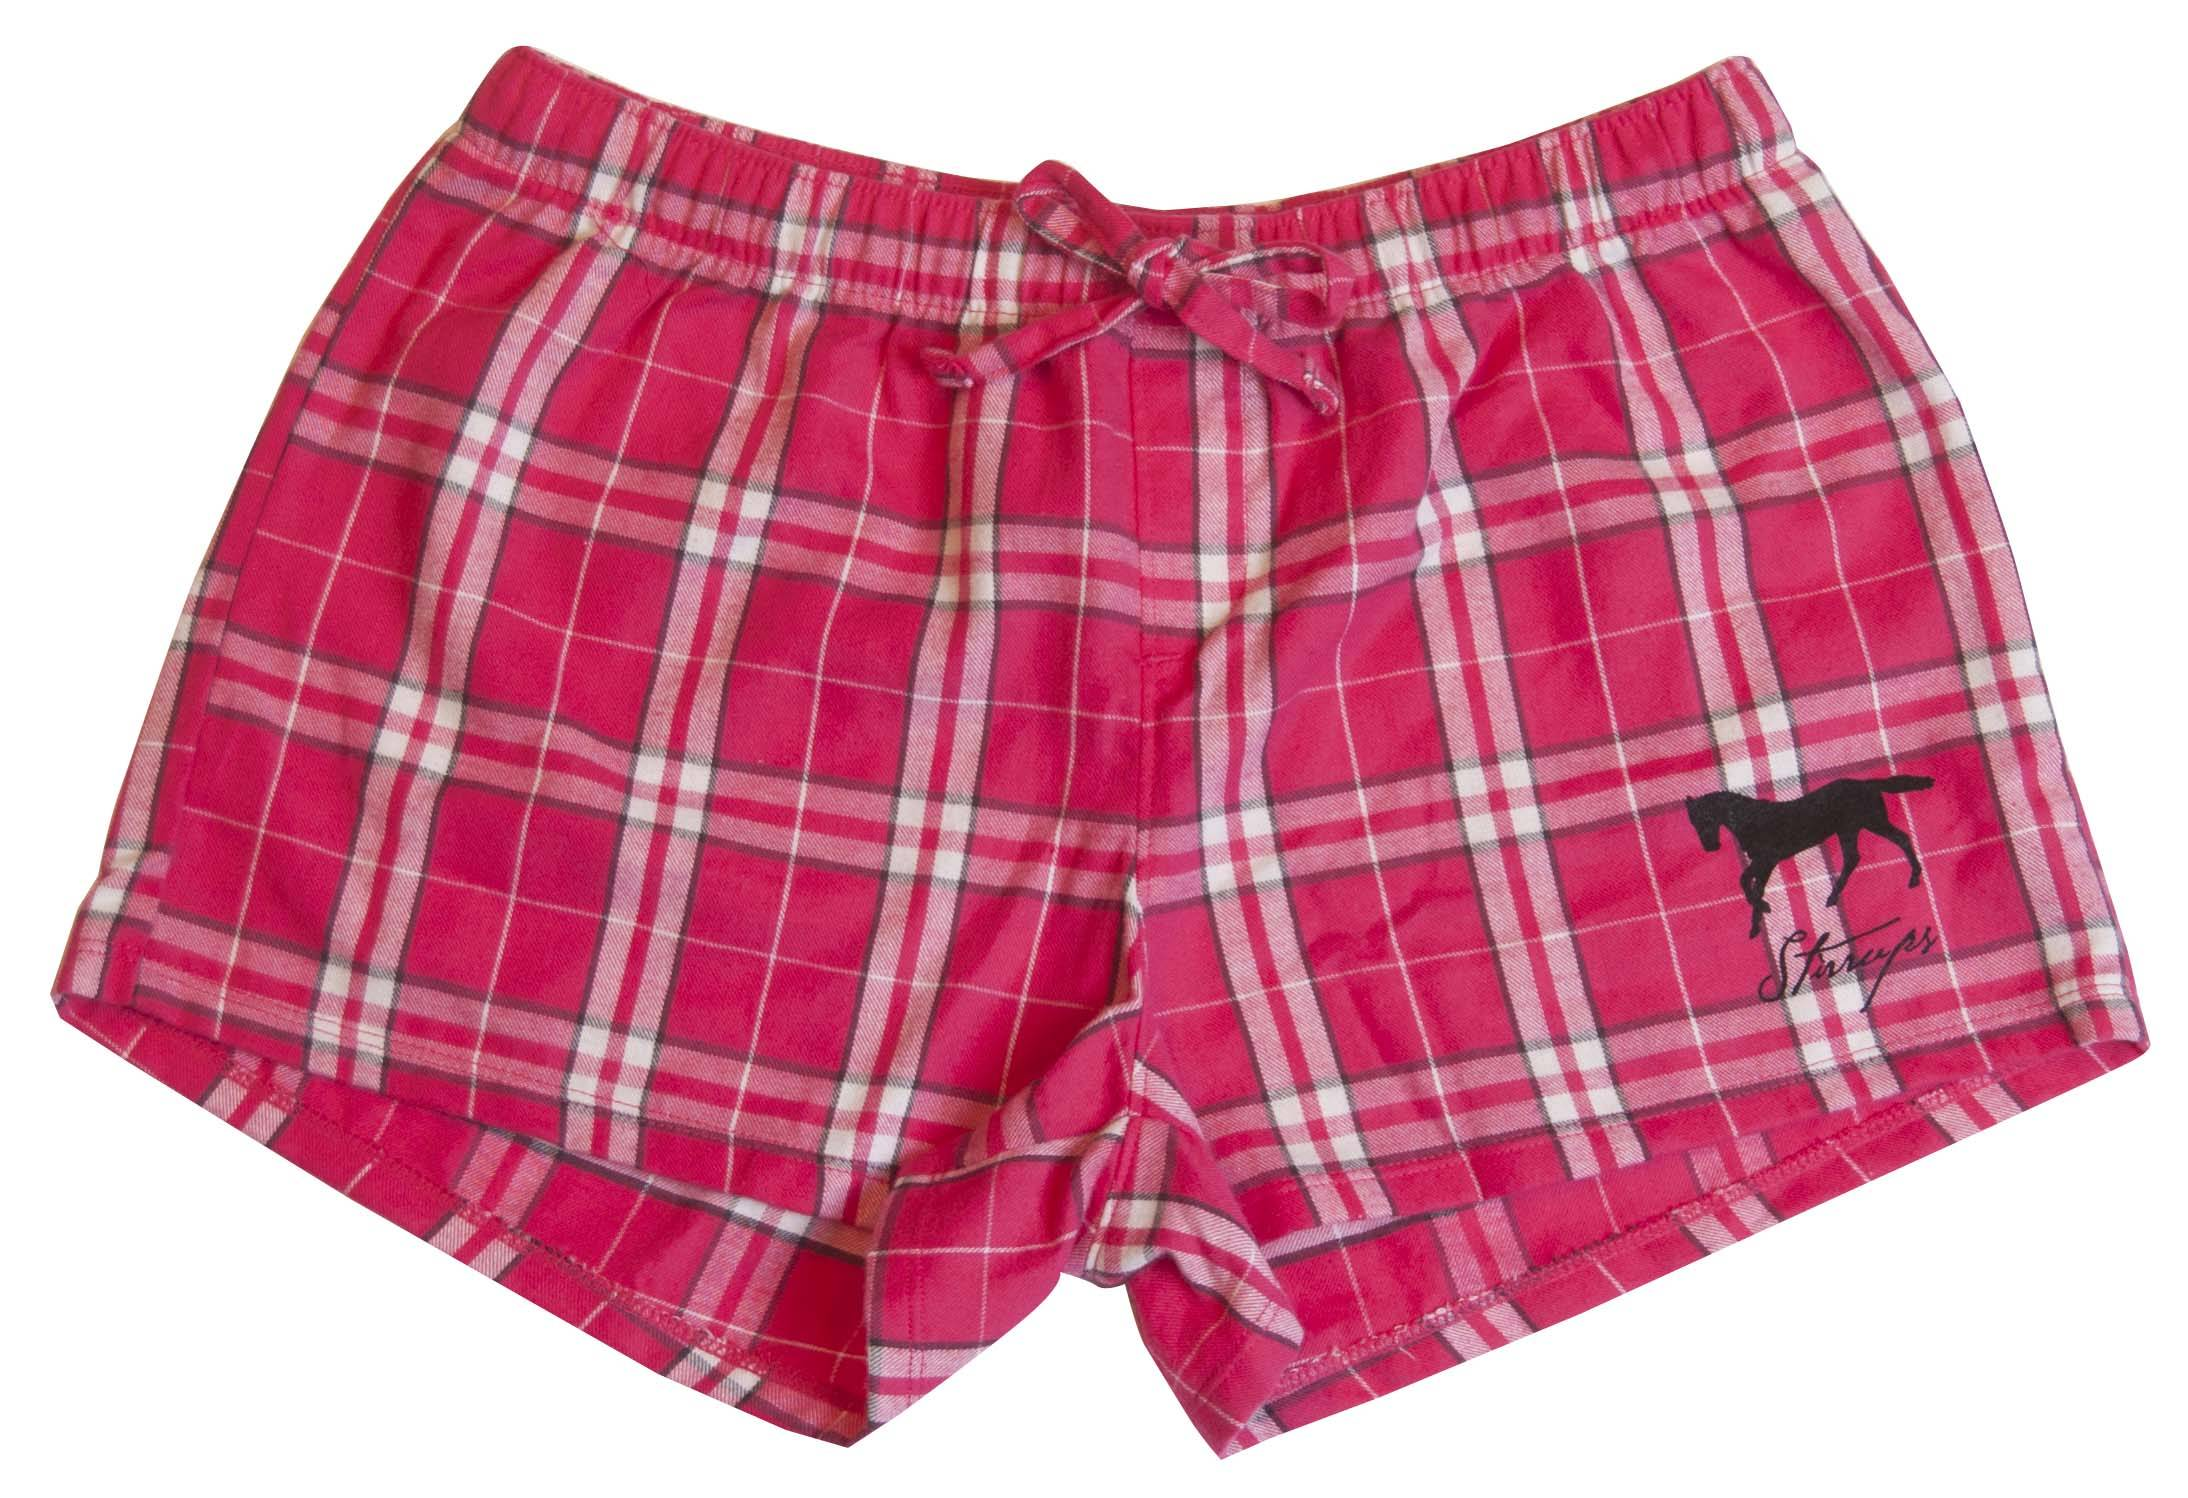 Stirrups Juniors Running Horse Combed Cotton Flannel Plaid Shorts